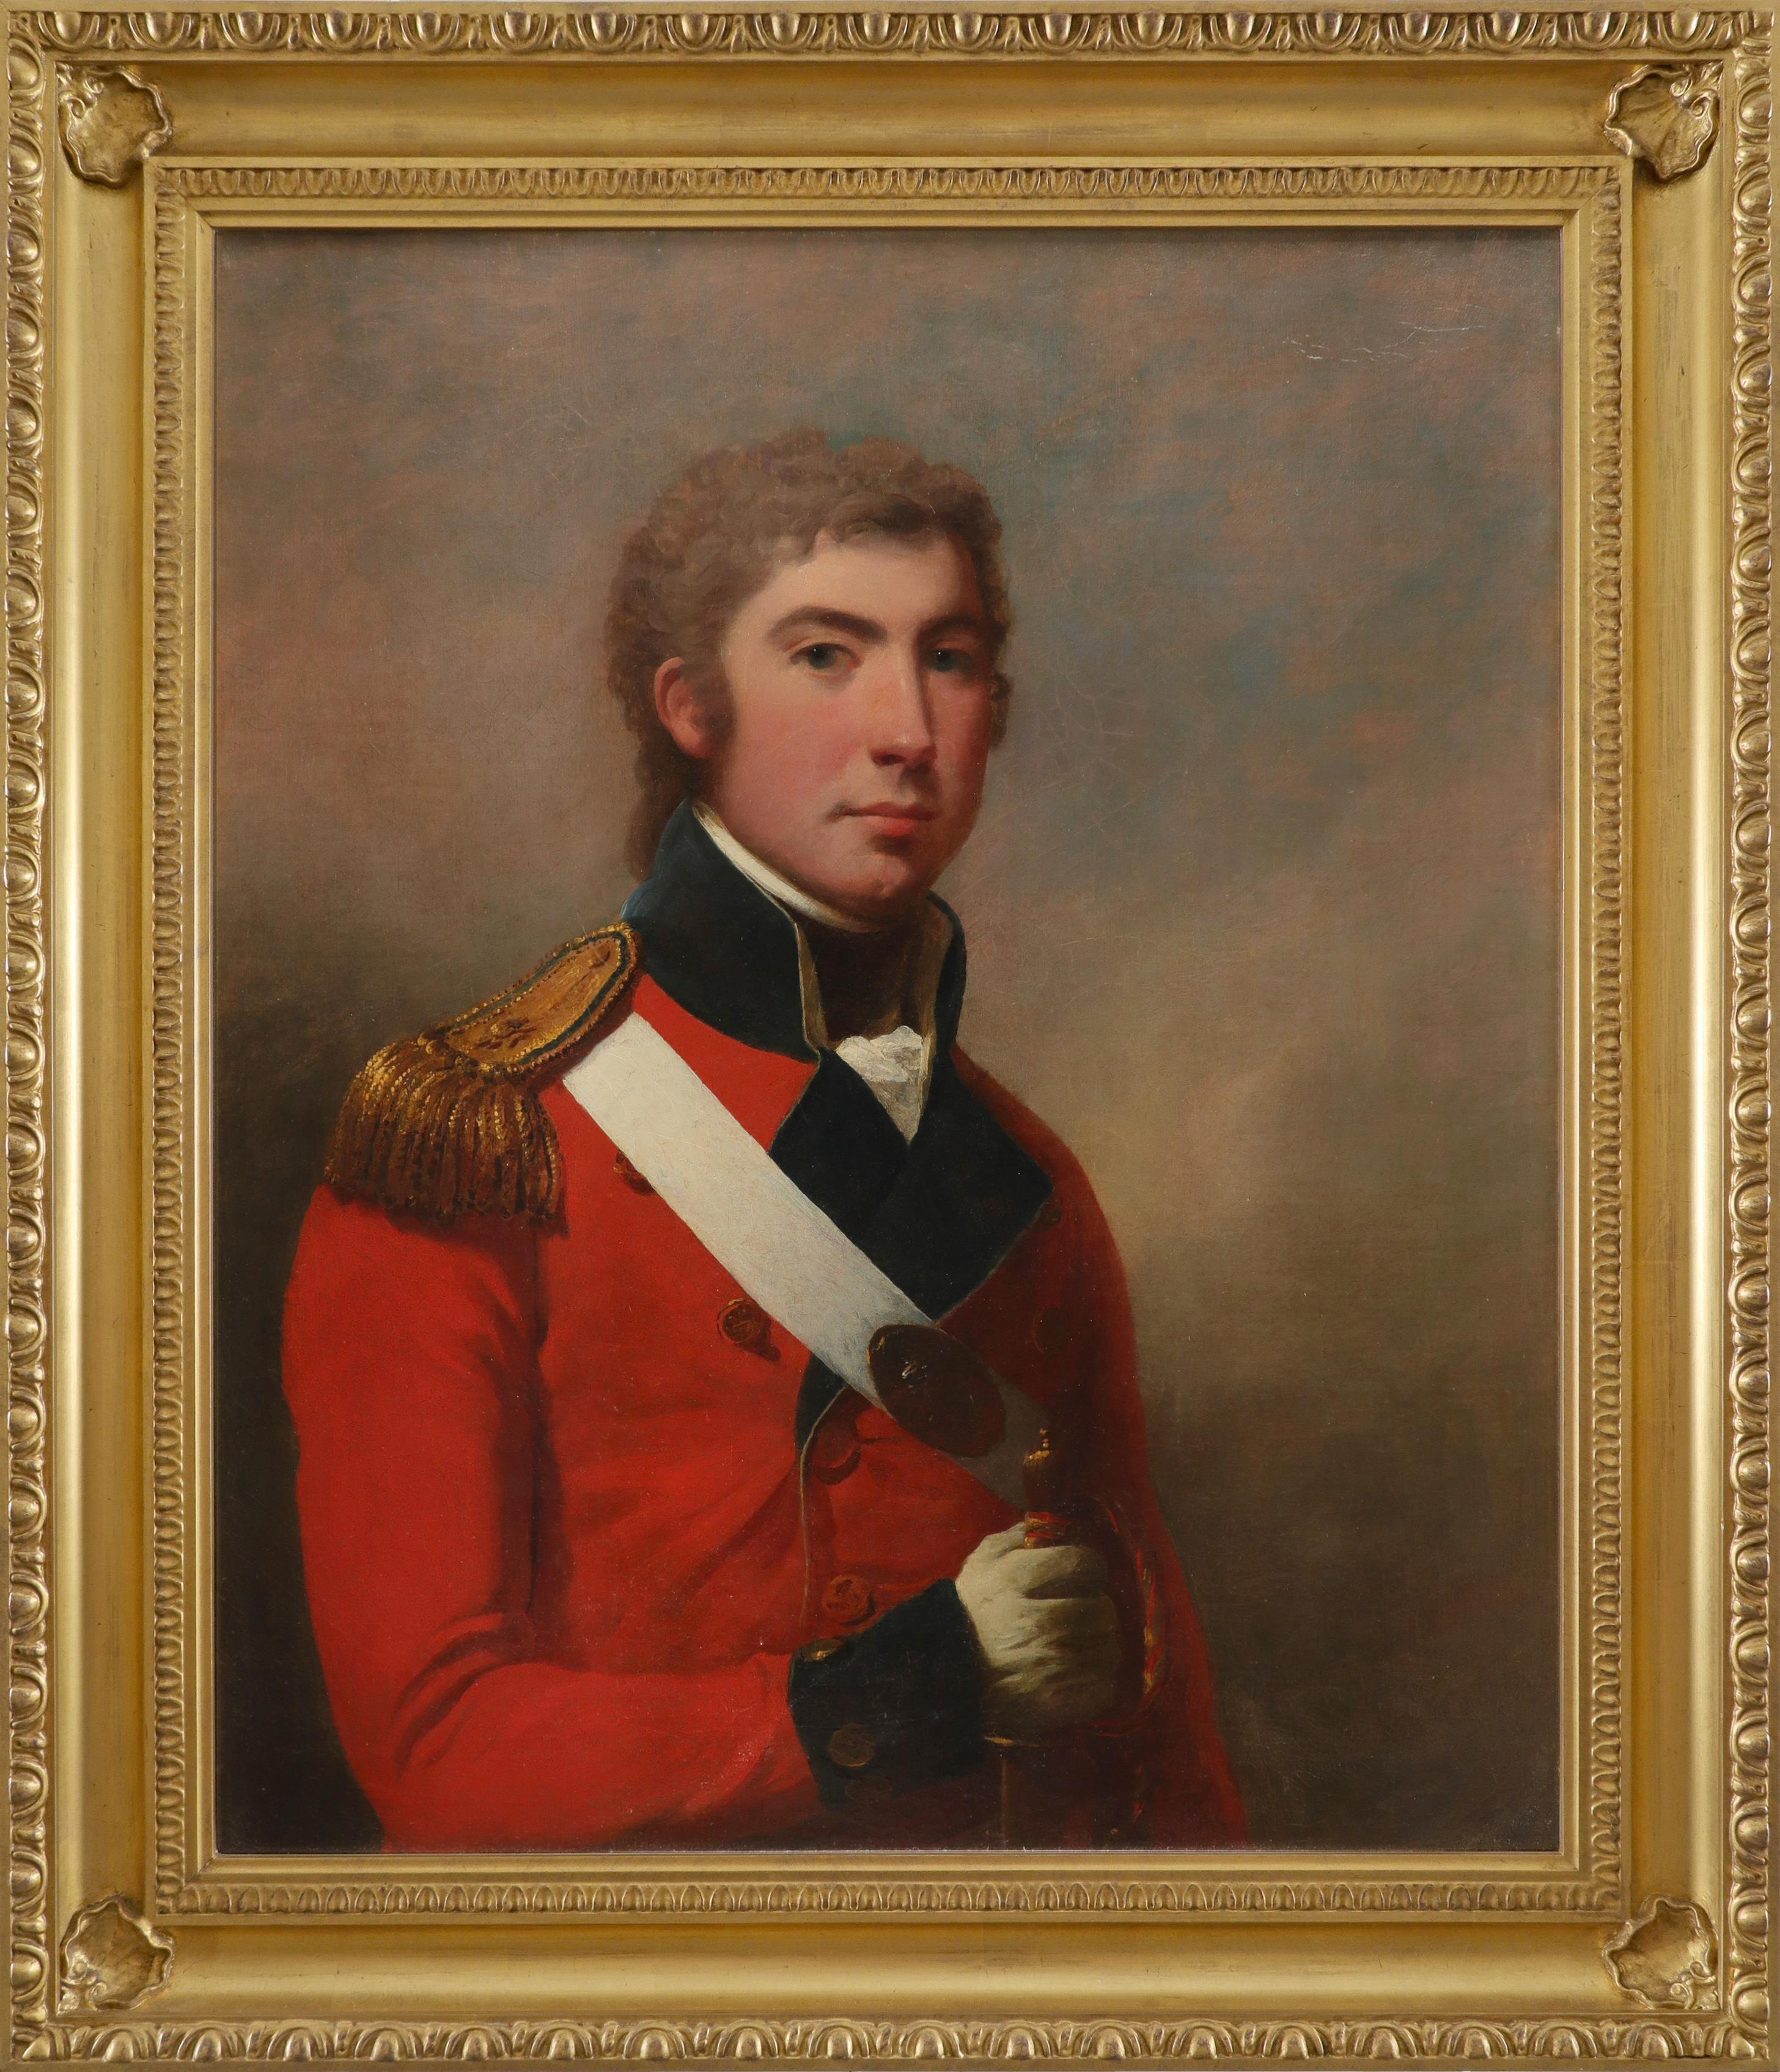 Attributed to Arthur William Devis (1762-1822) Portrait of young officer, half-length, in uniform - Image 2 of 3